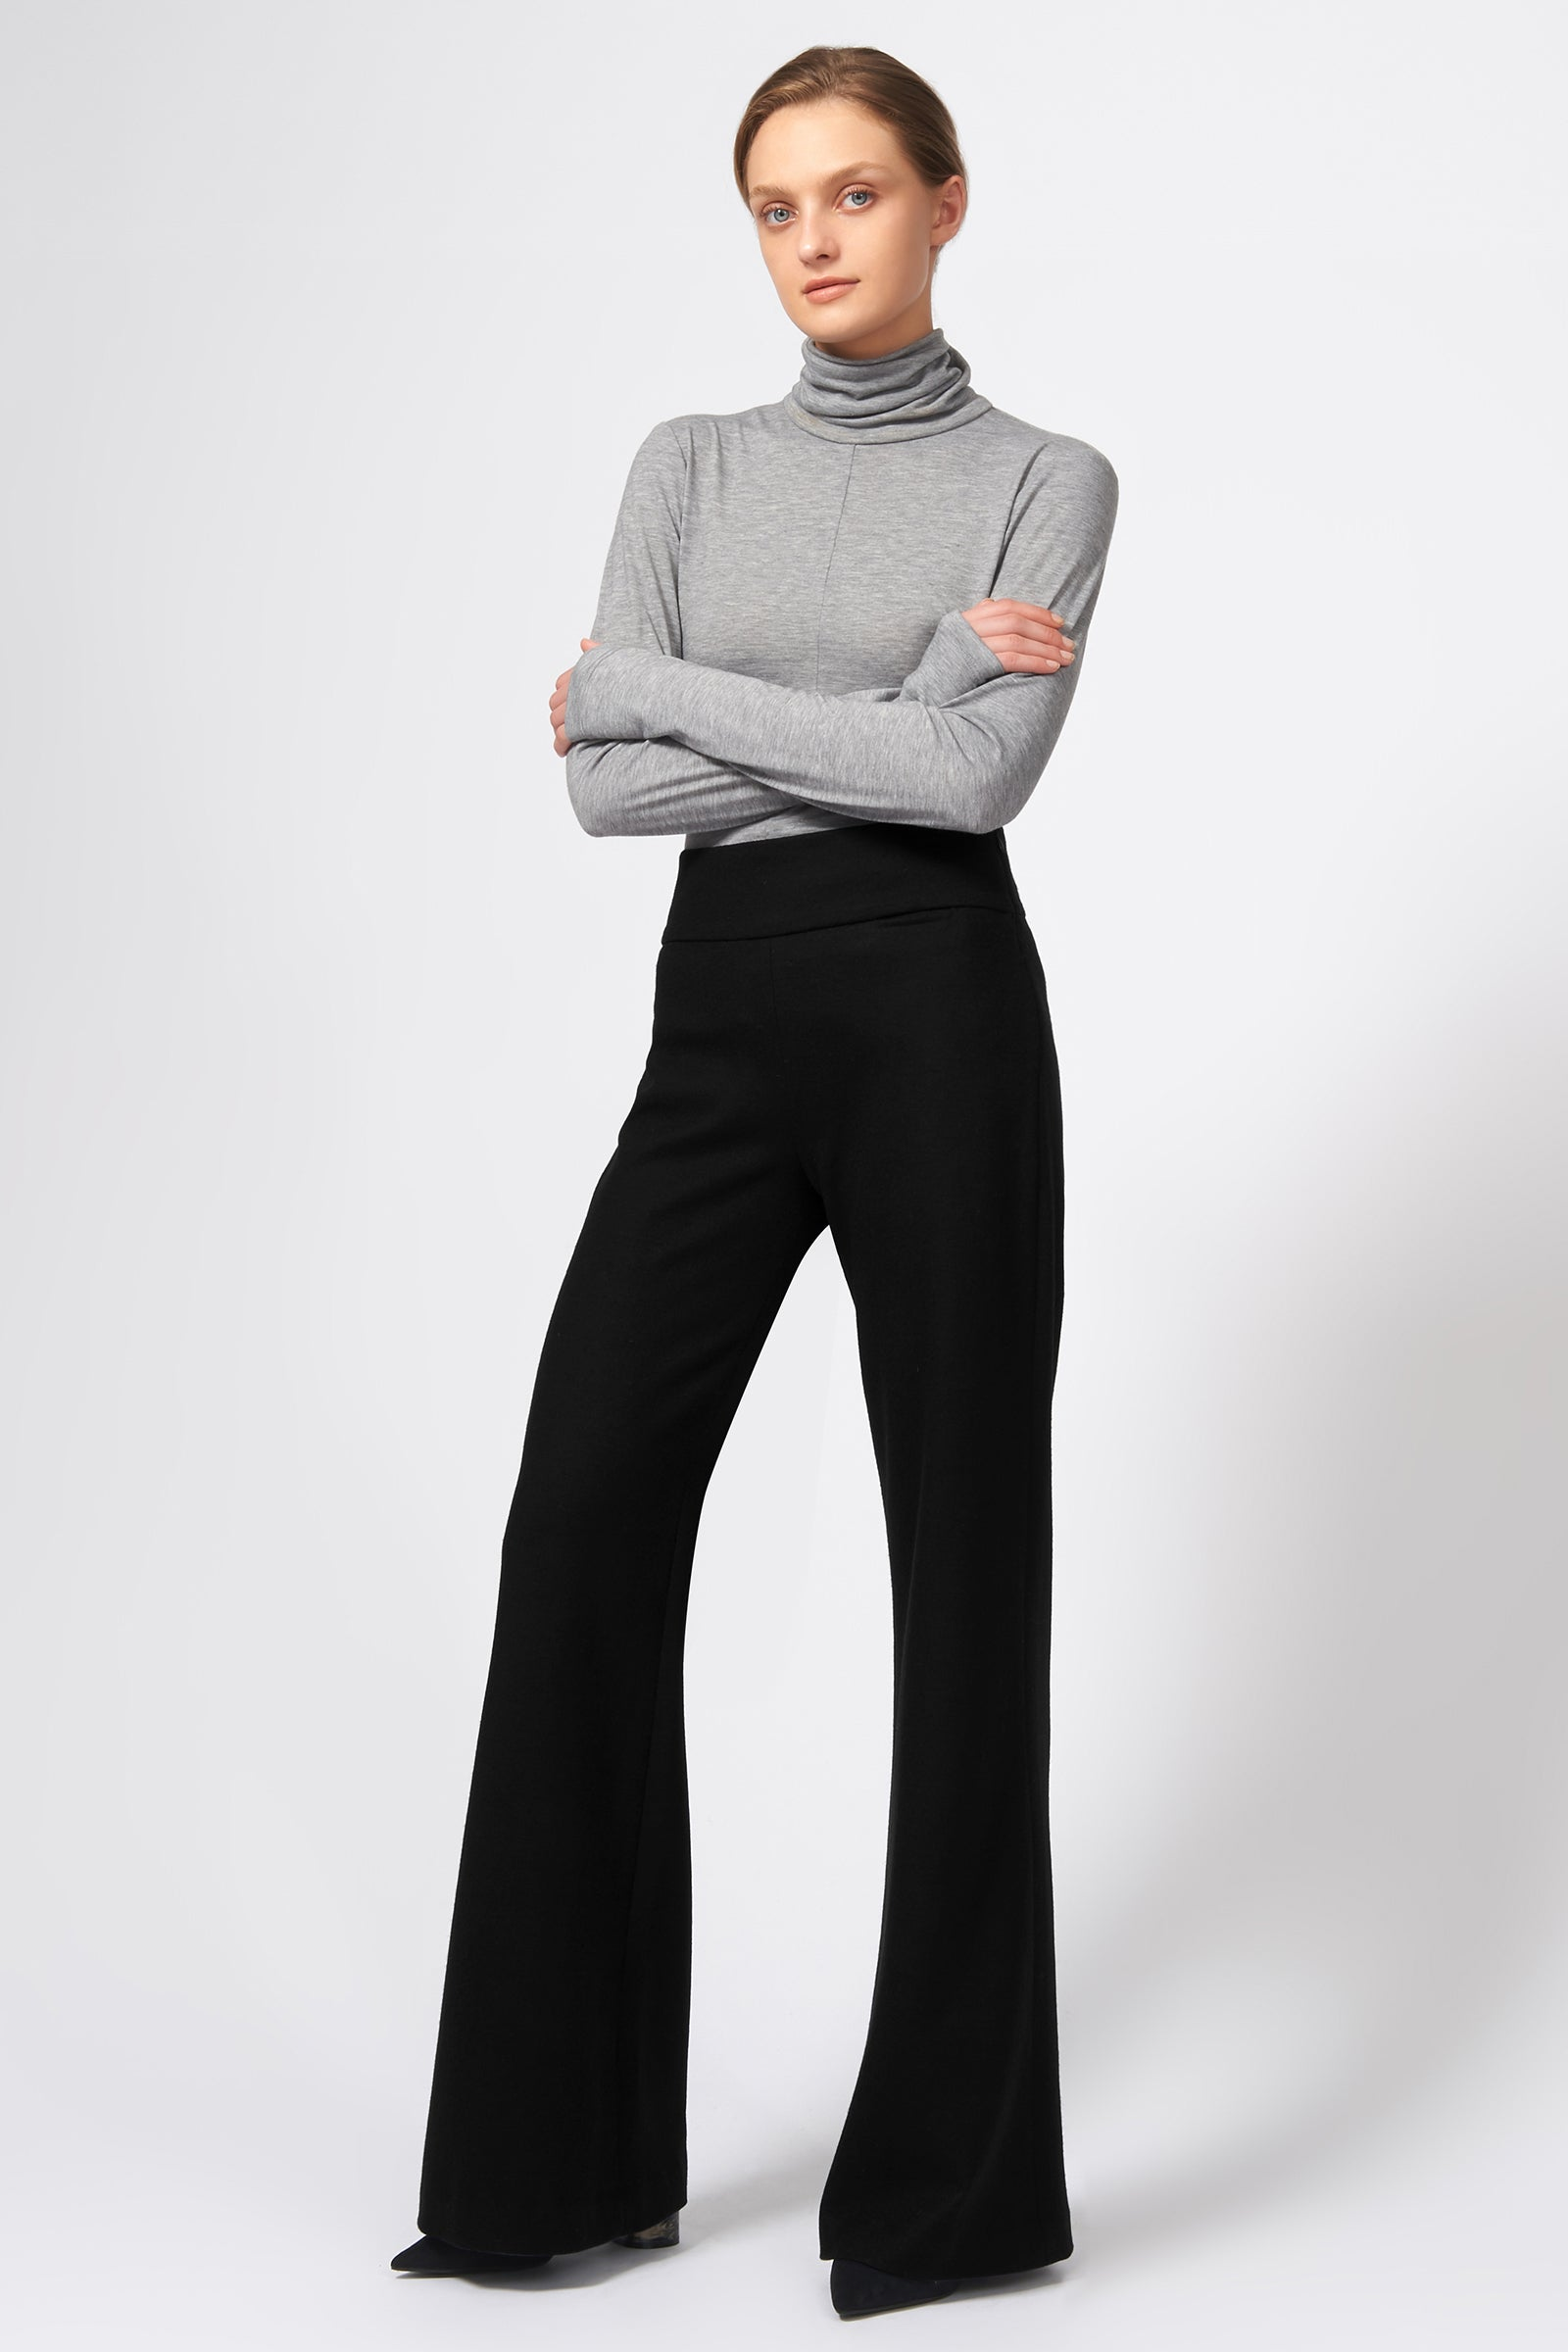 Kal Rieman Felted Jersey Wide Leg Pant in Black on Model Front Side View